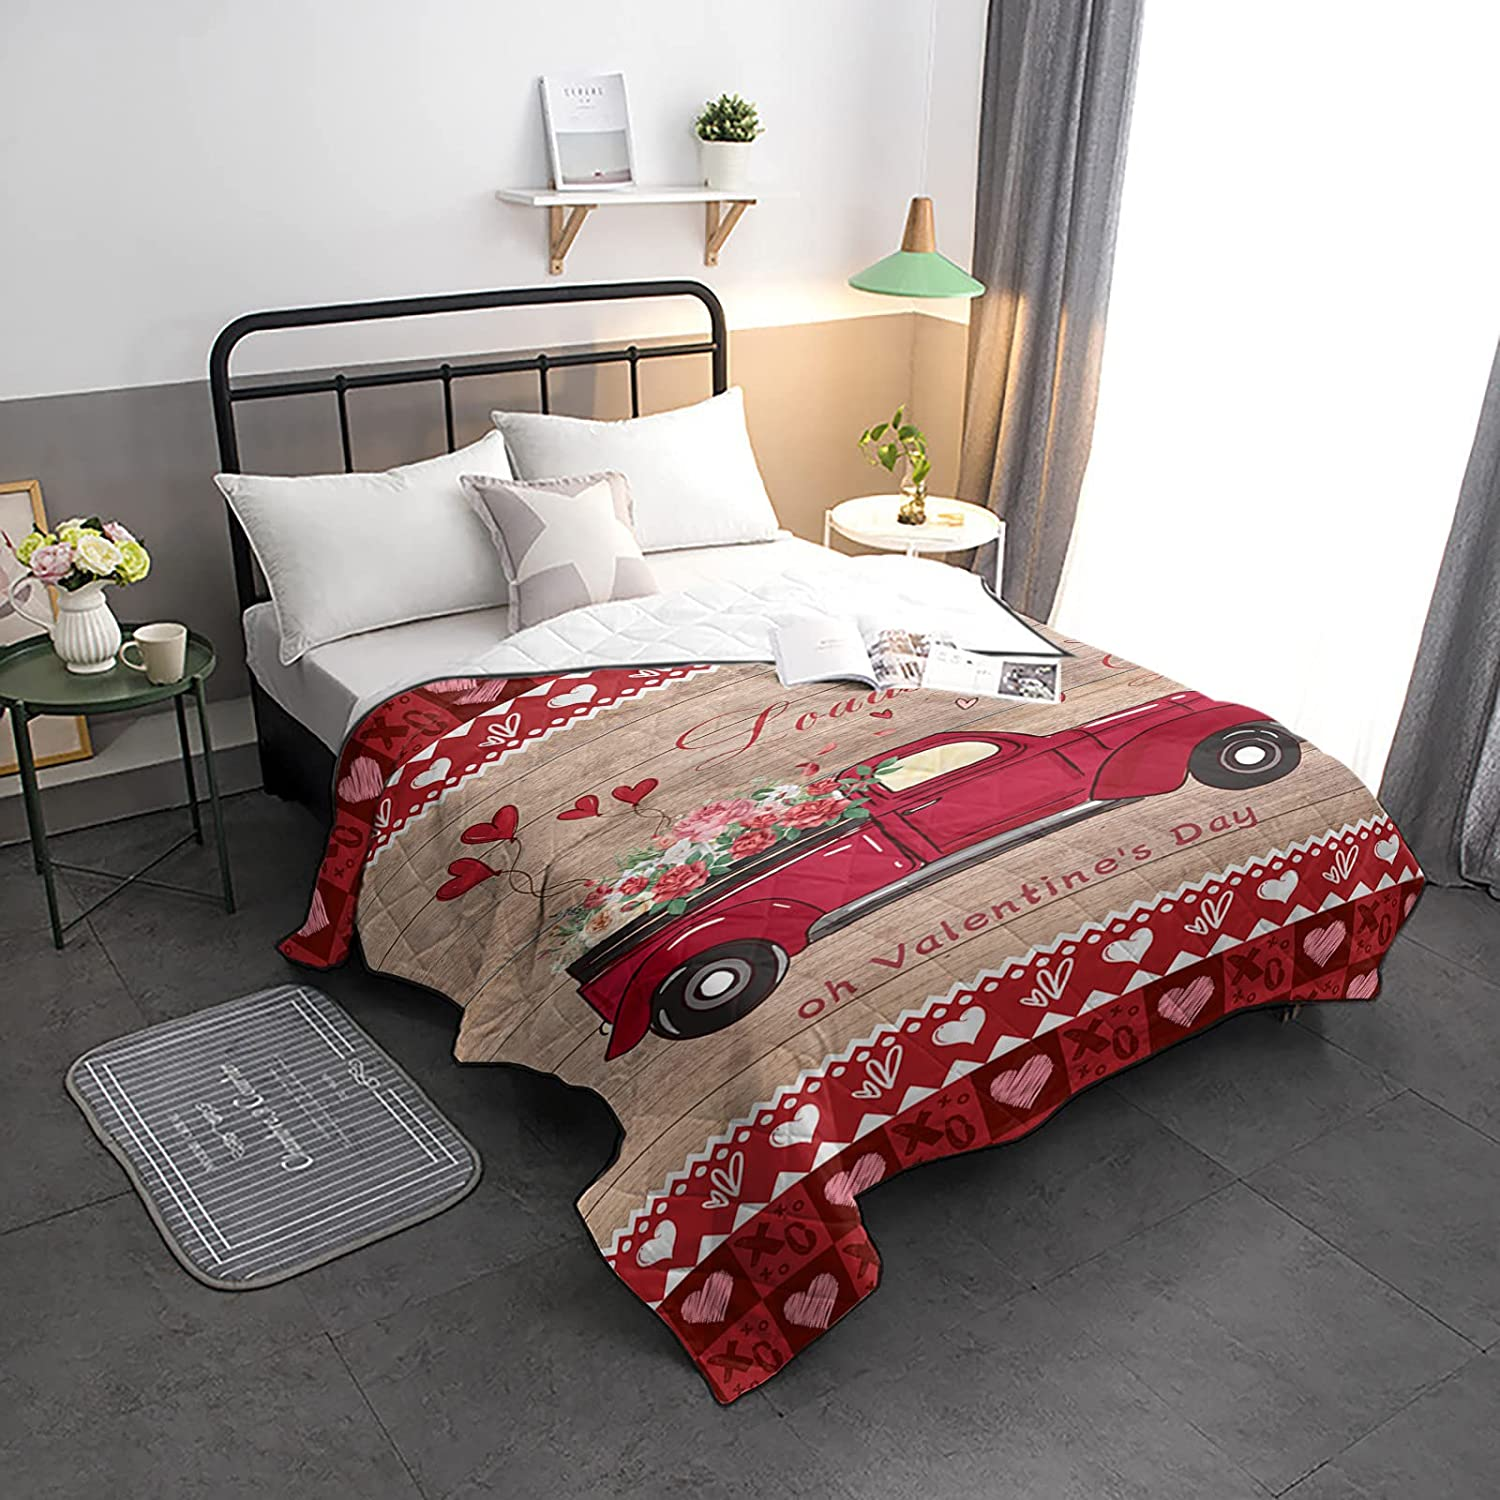 HELLOWINK Bedding At the price of surprise Comforter Duvet Branded goods Qu Twin Lighweight Size-Soft